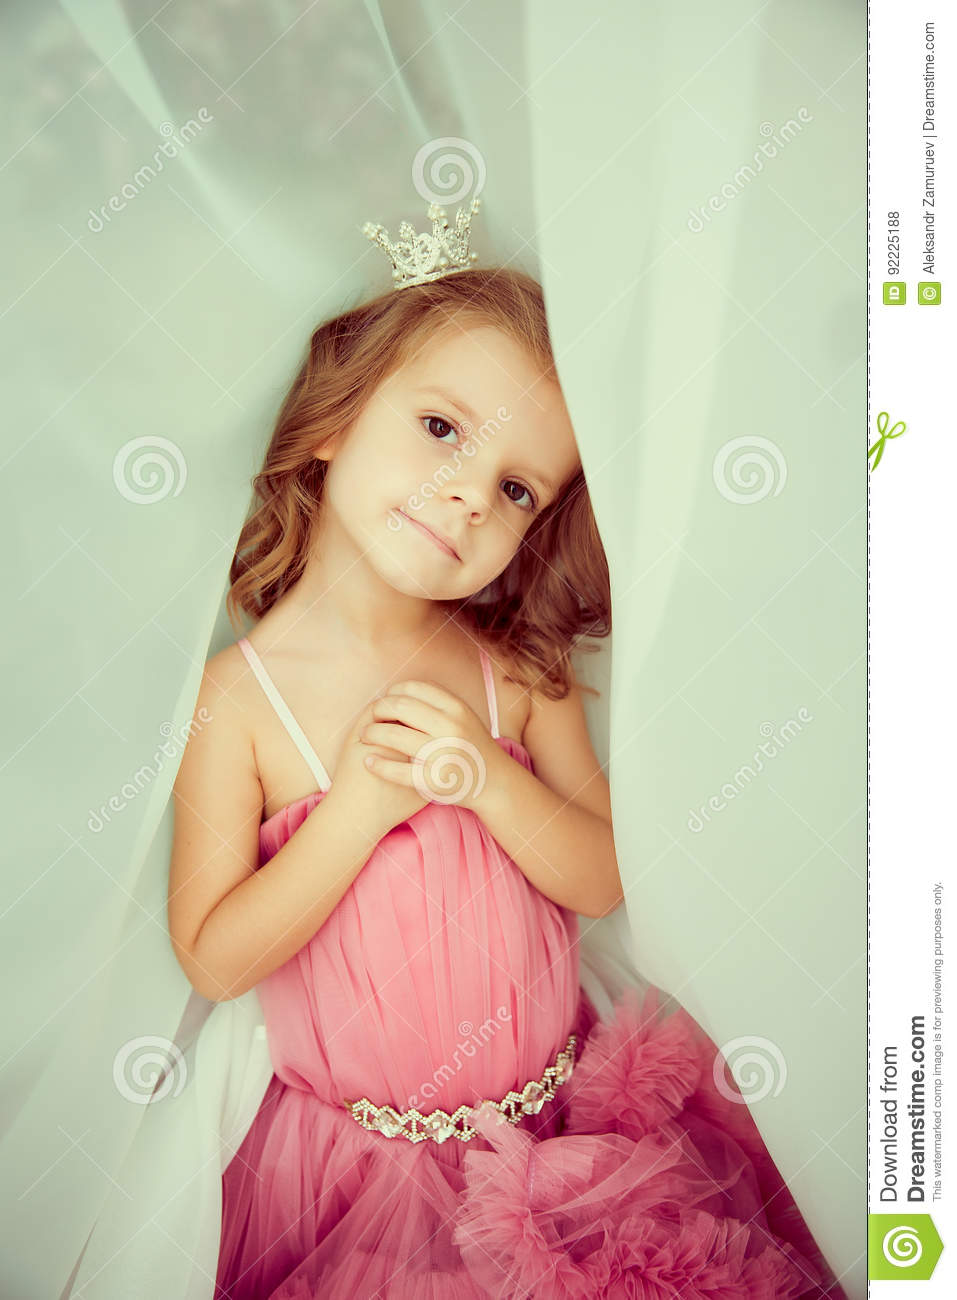 Portrait of adorable little girl in pink dress and tiara